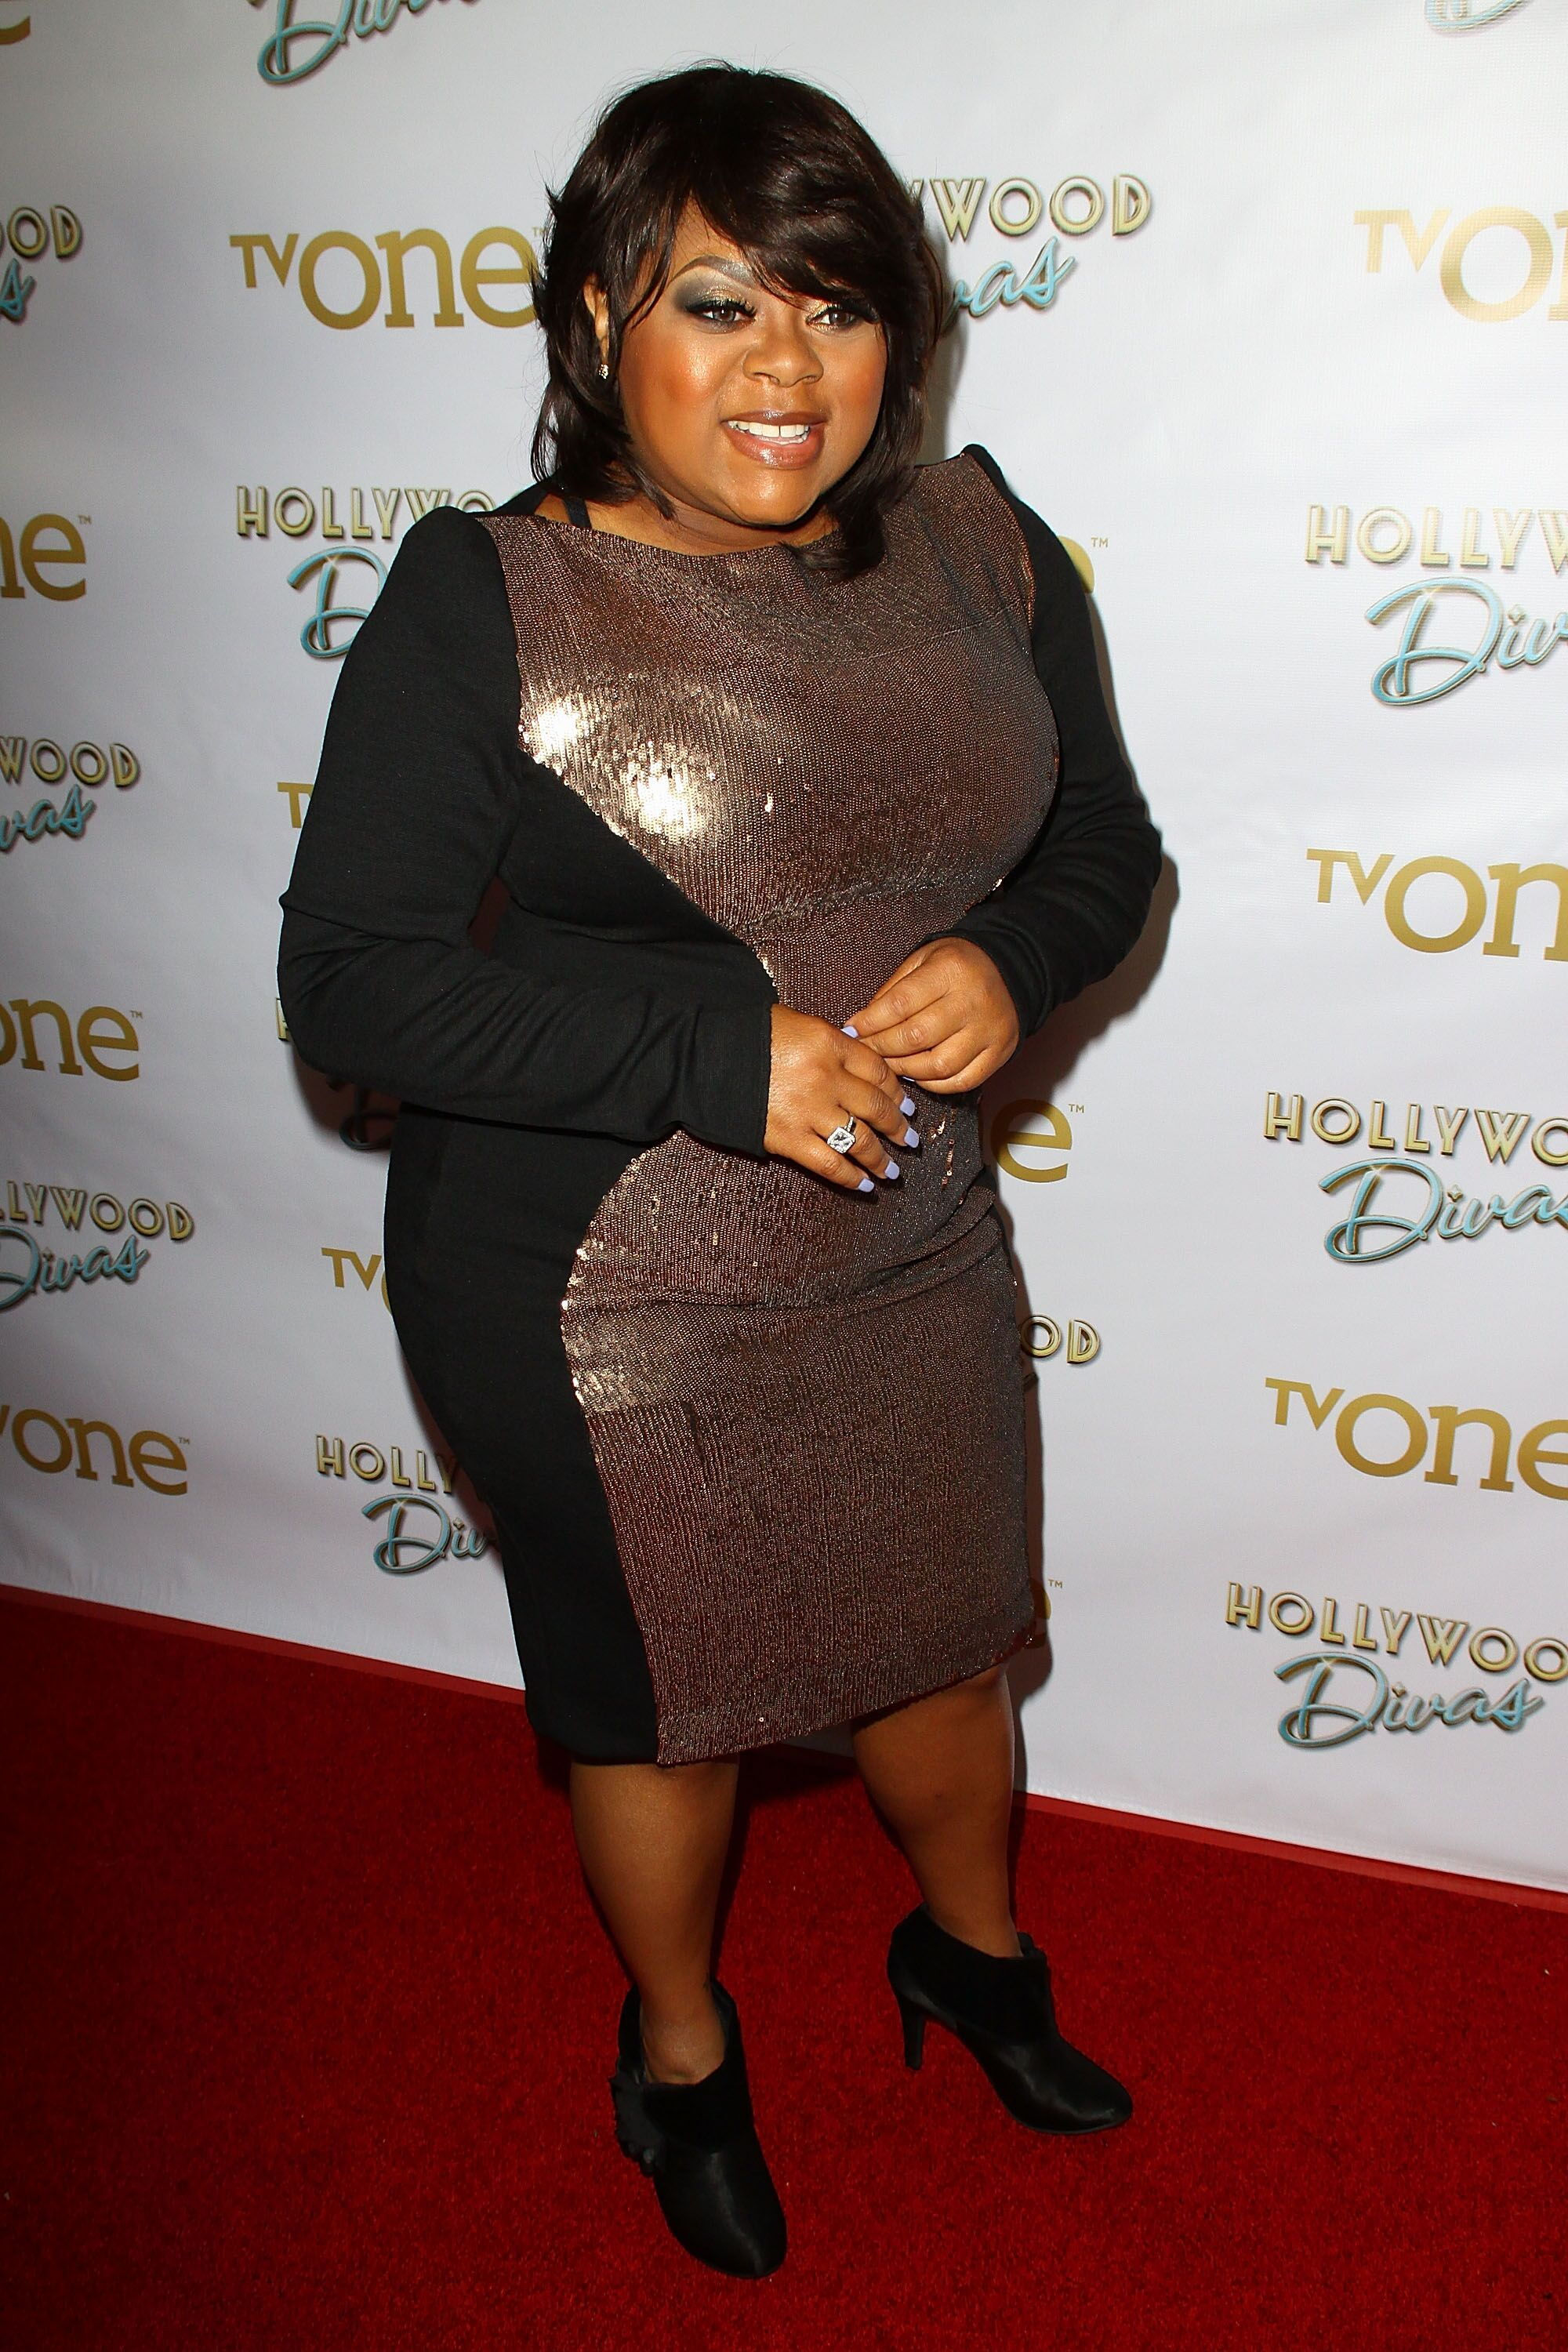 Countess Vaughn attends the premiere party for TV One's 'Hollywood Divas.' | Source: Getty Images